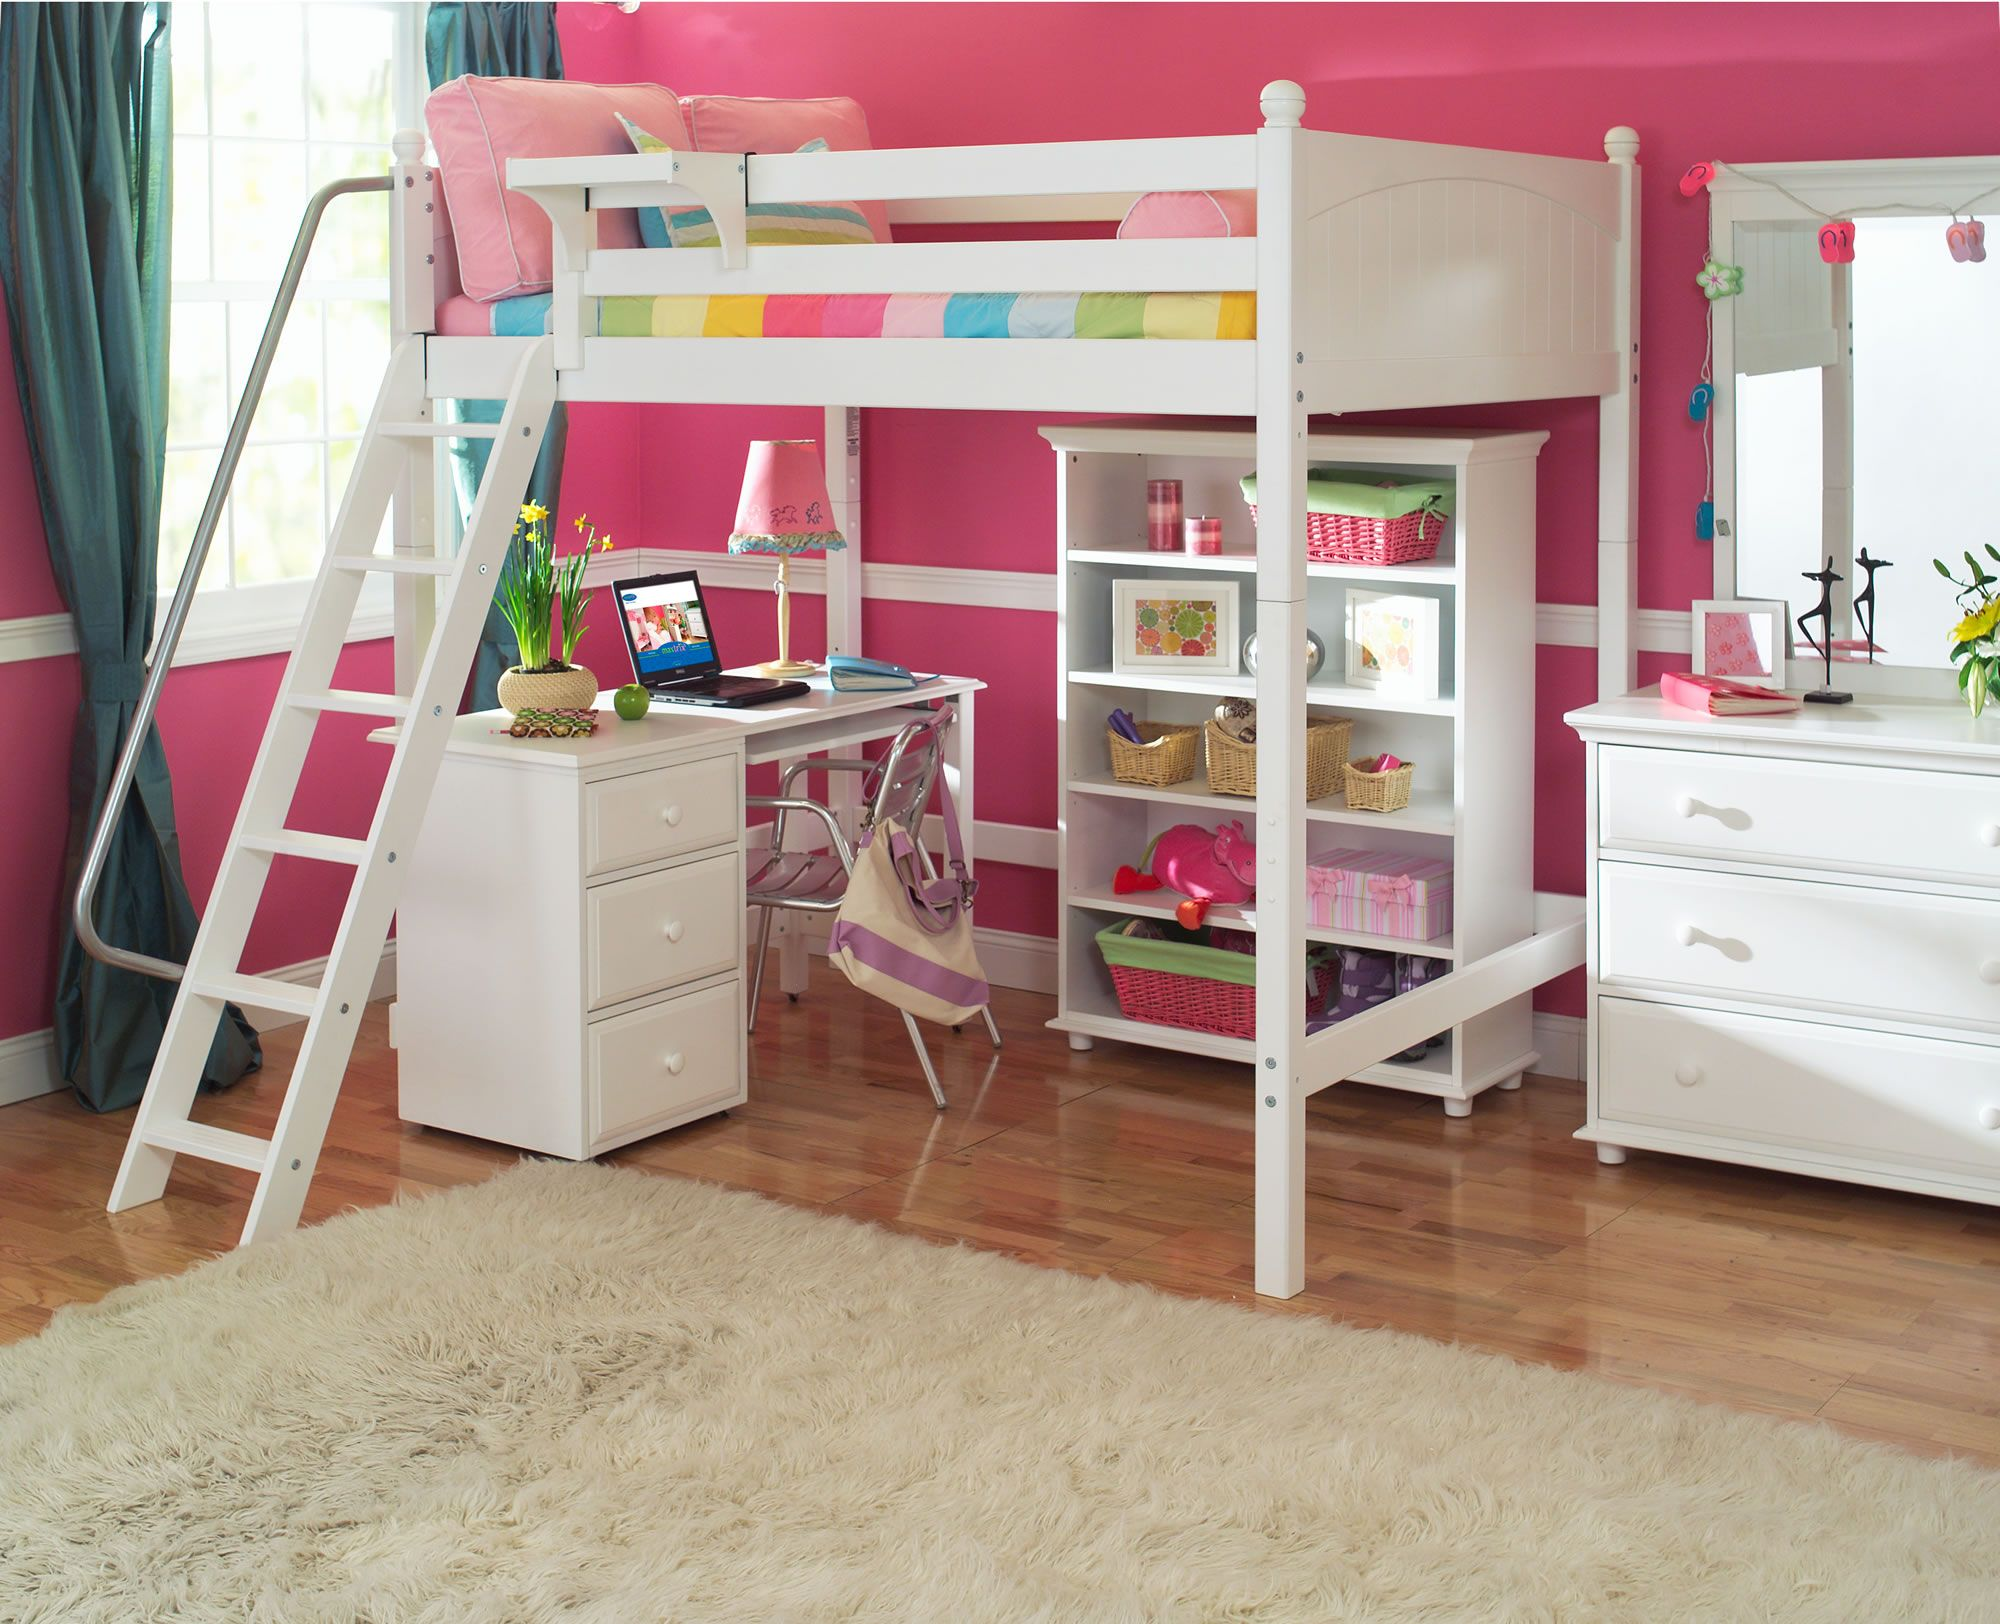 Bunk Bed With Desk Under It Luxury Living Room Set Check More At Http Www Gameintown Com Bunk Bed With De Kids Loft Beds Girls Loft Bed Childrens Loft Beds